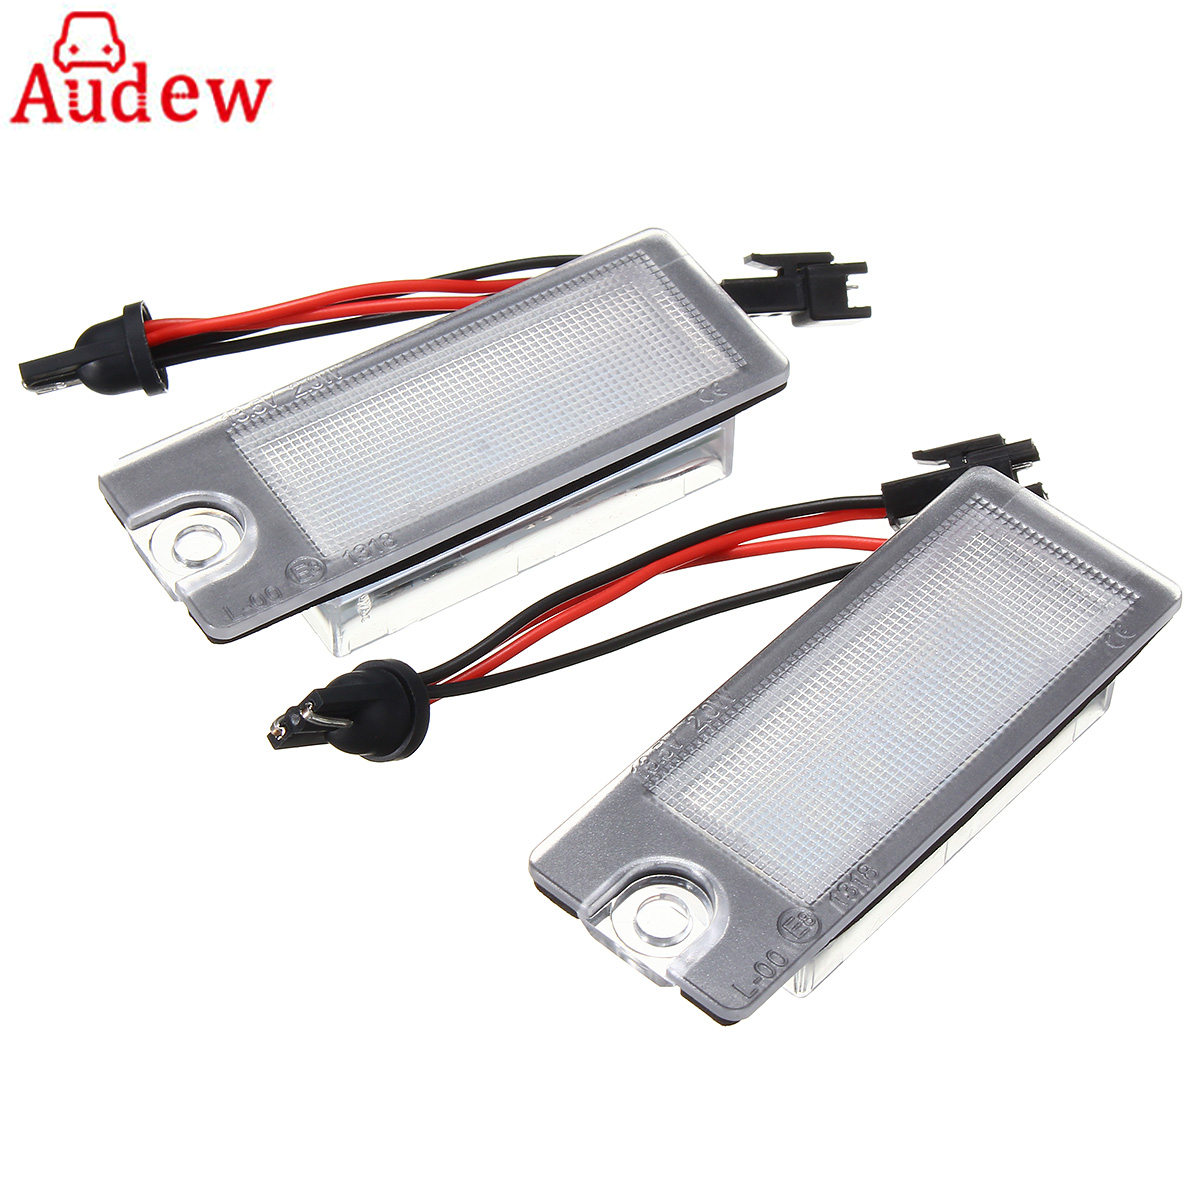 2Pcs Car LED License Plate Light White Number Plate Lamp Error Free For Volvo S80 99-06 V70 XC70 S60 XC90 2x e marked obc error free 24 led white license number plate light lamp for bmw e81 e82 e90 e91 e92 e93 e60 e61 e39 x1 e84